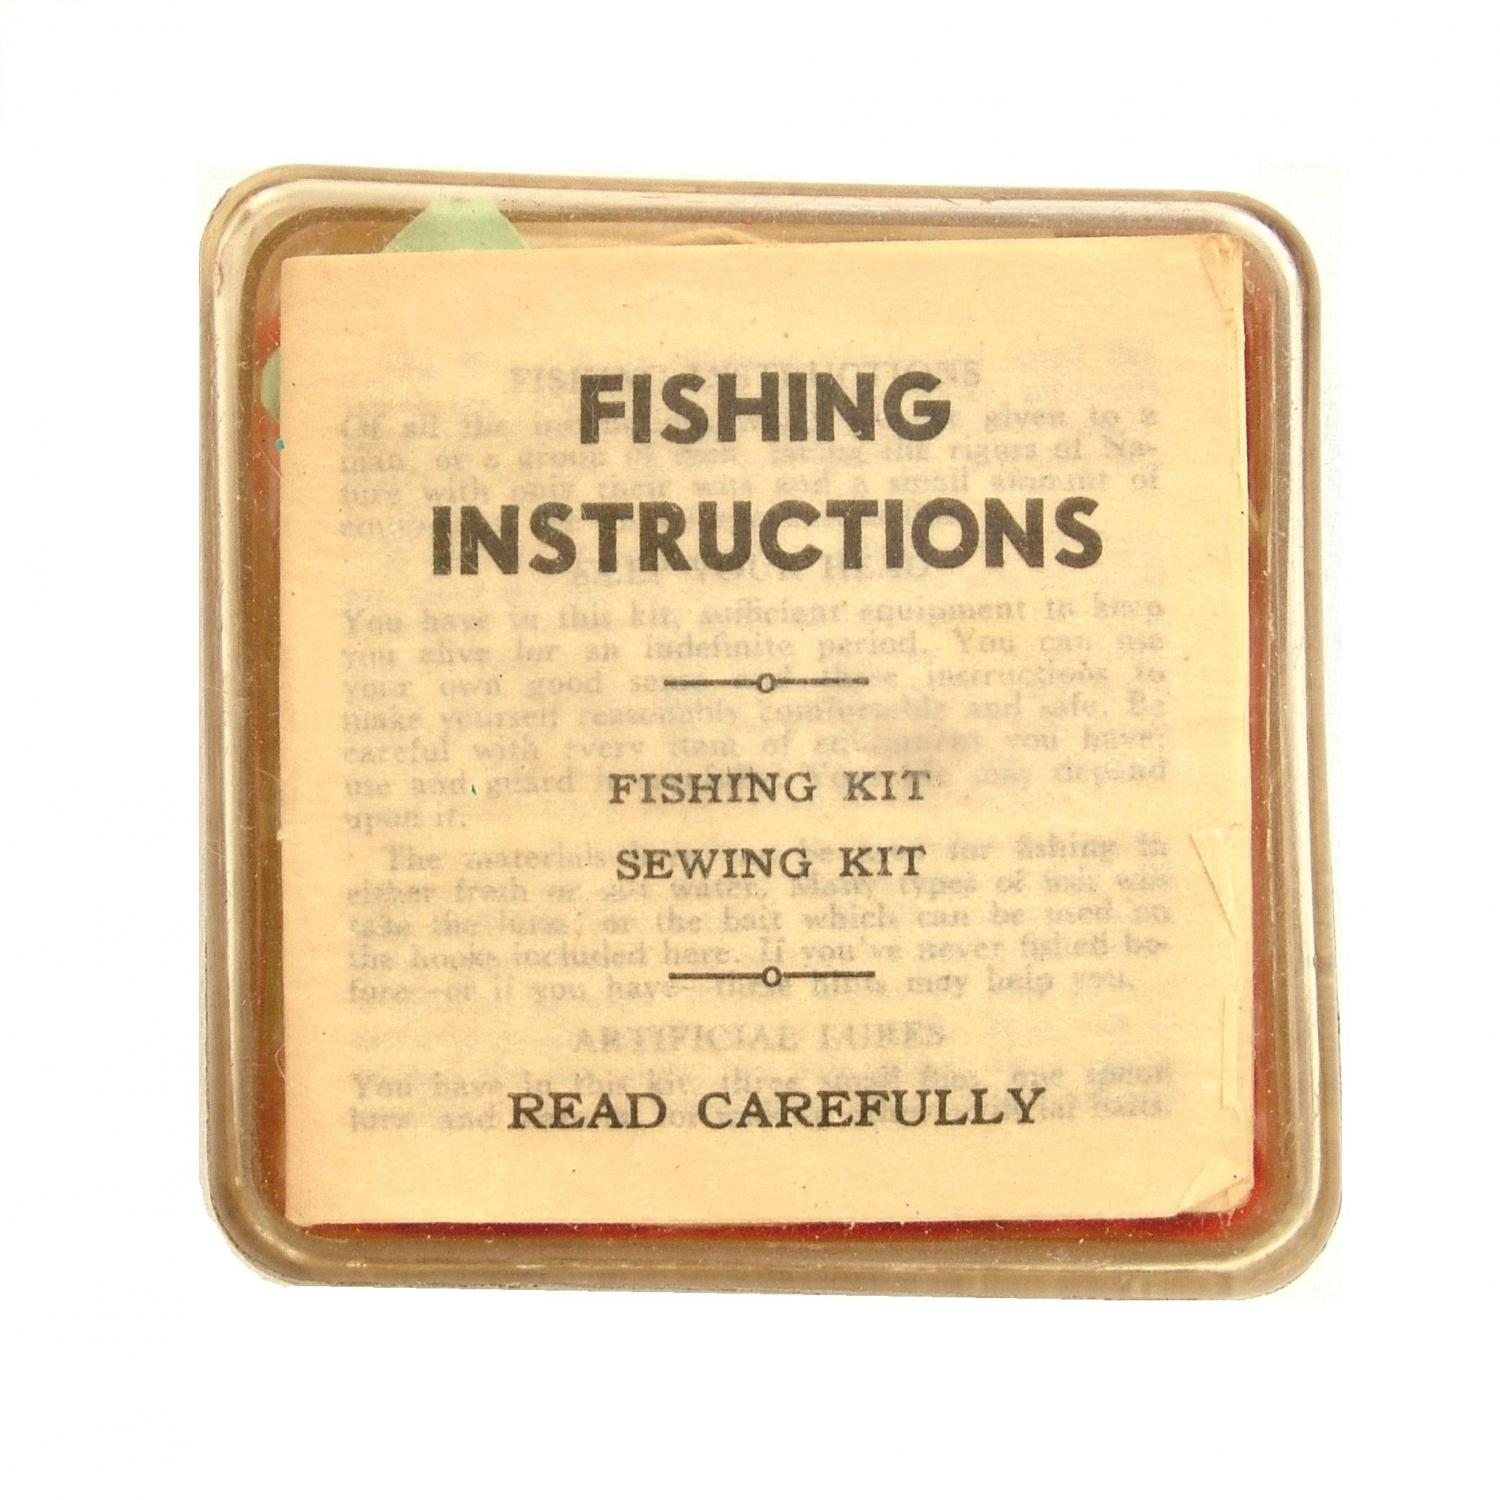 USAAF C-1 Survival Vest Fishing Kit